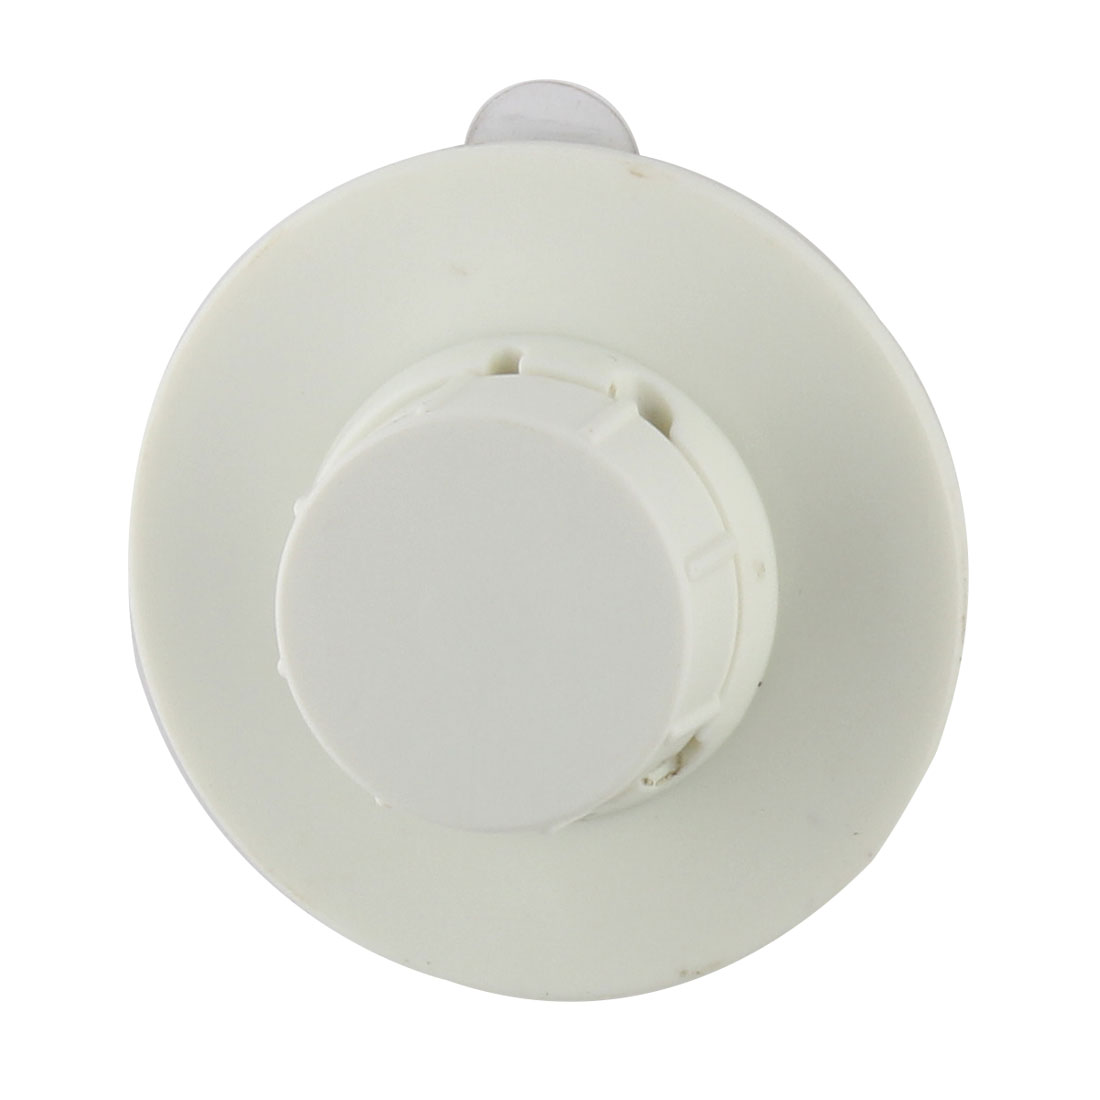 Household Plastic Water Resistance Suction Cup Without Hook Beige